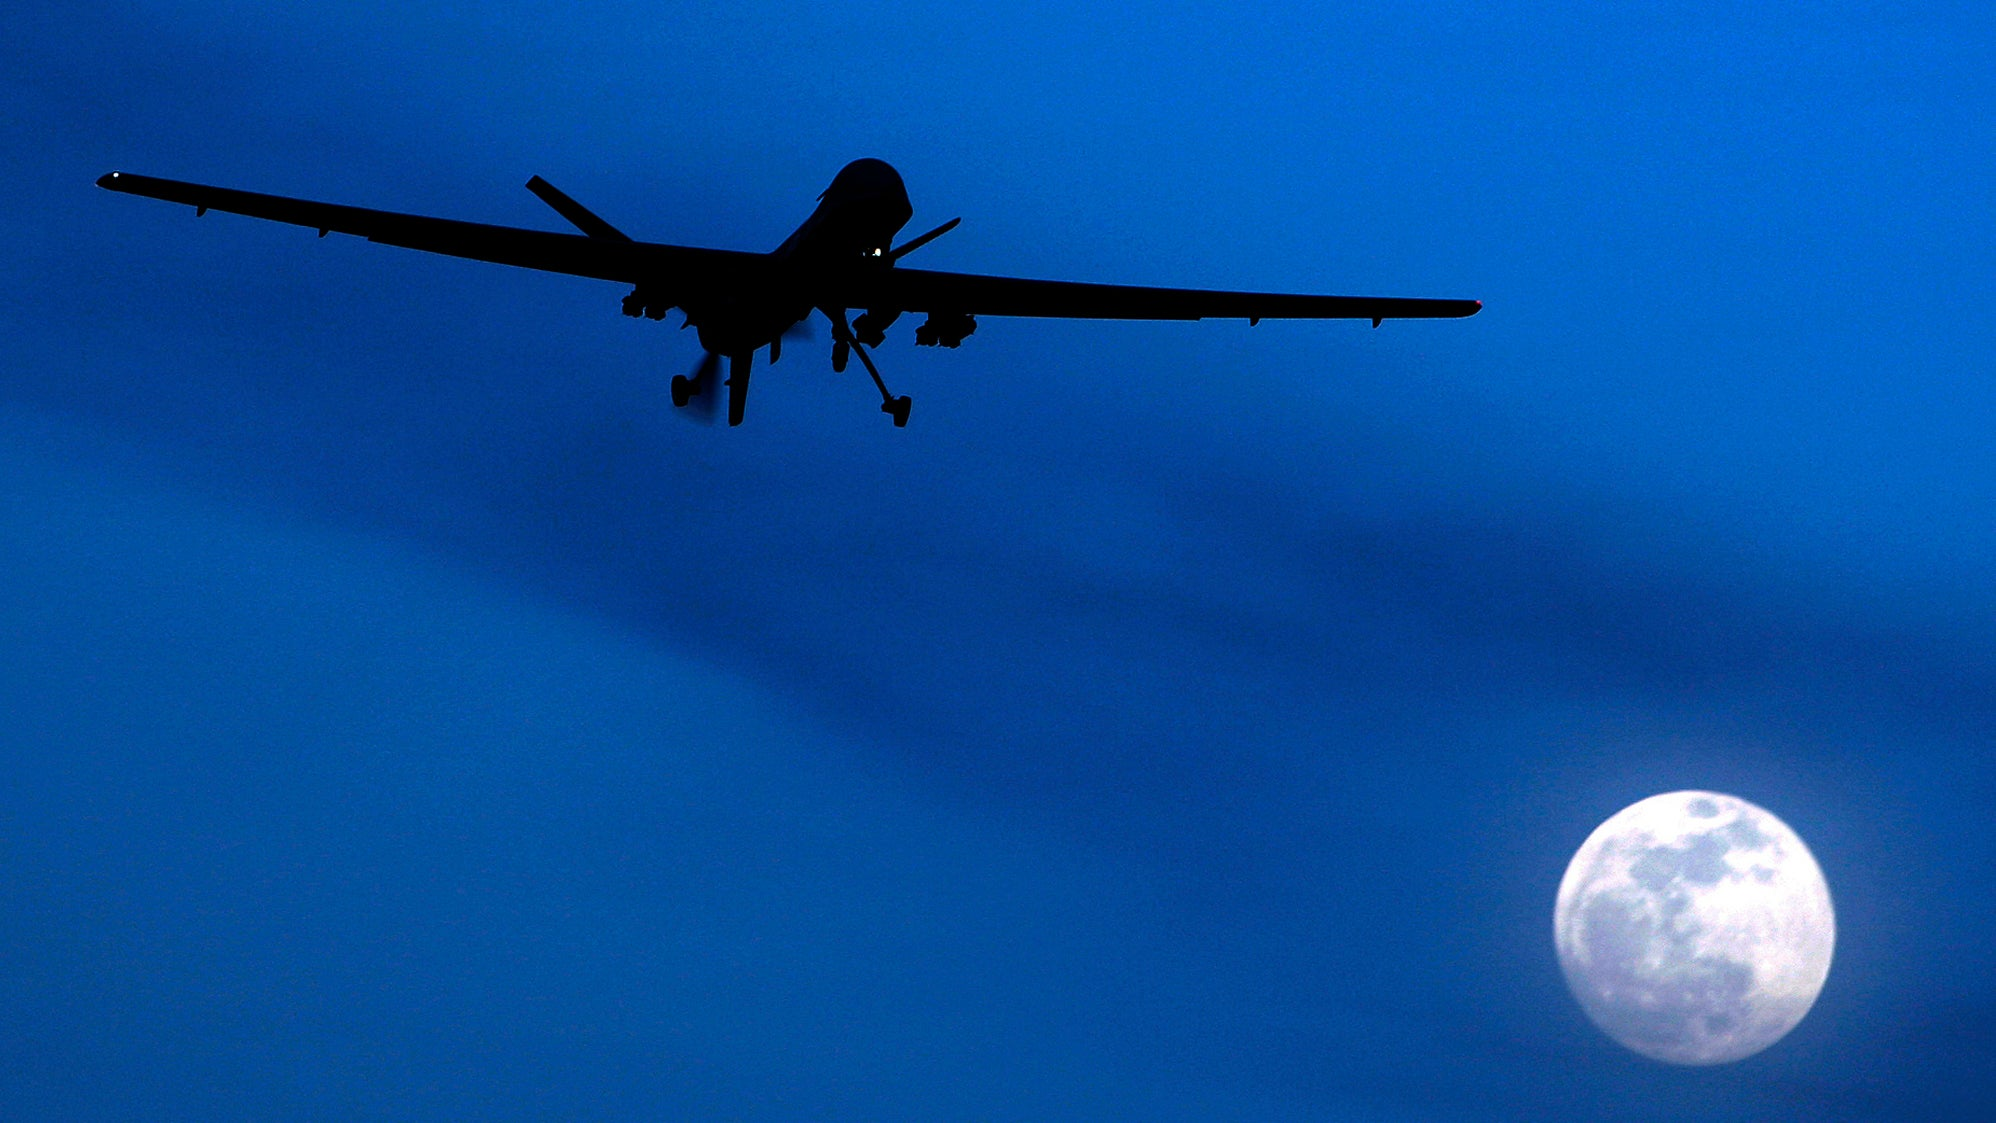 Trump Rescinds Policy Of Reporting Civilians Deaths By Drone Strike